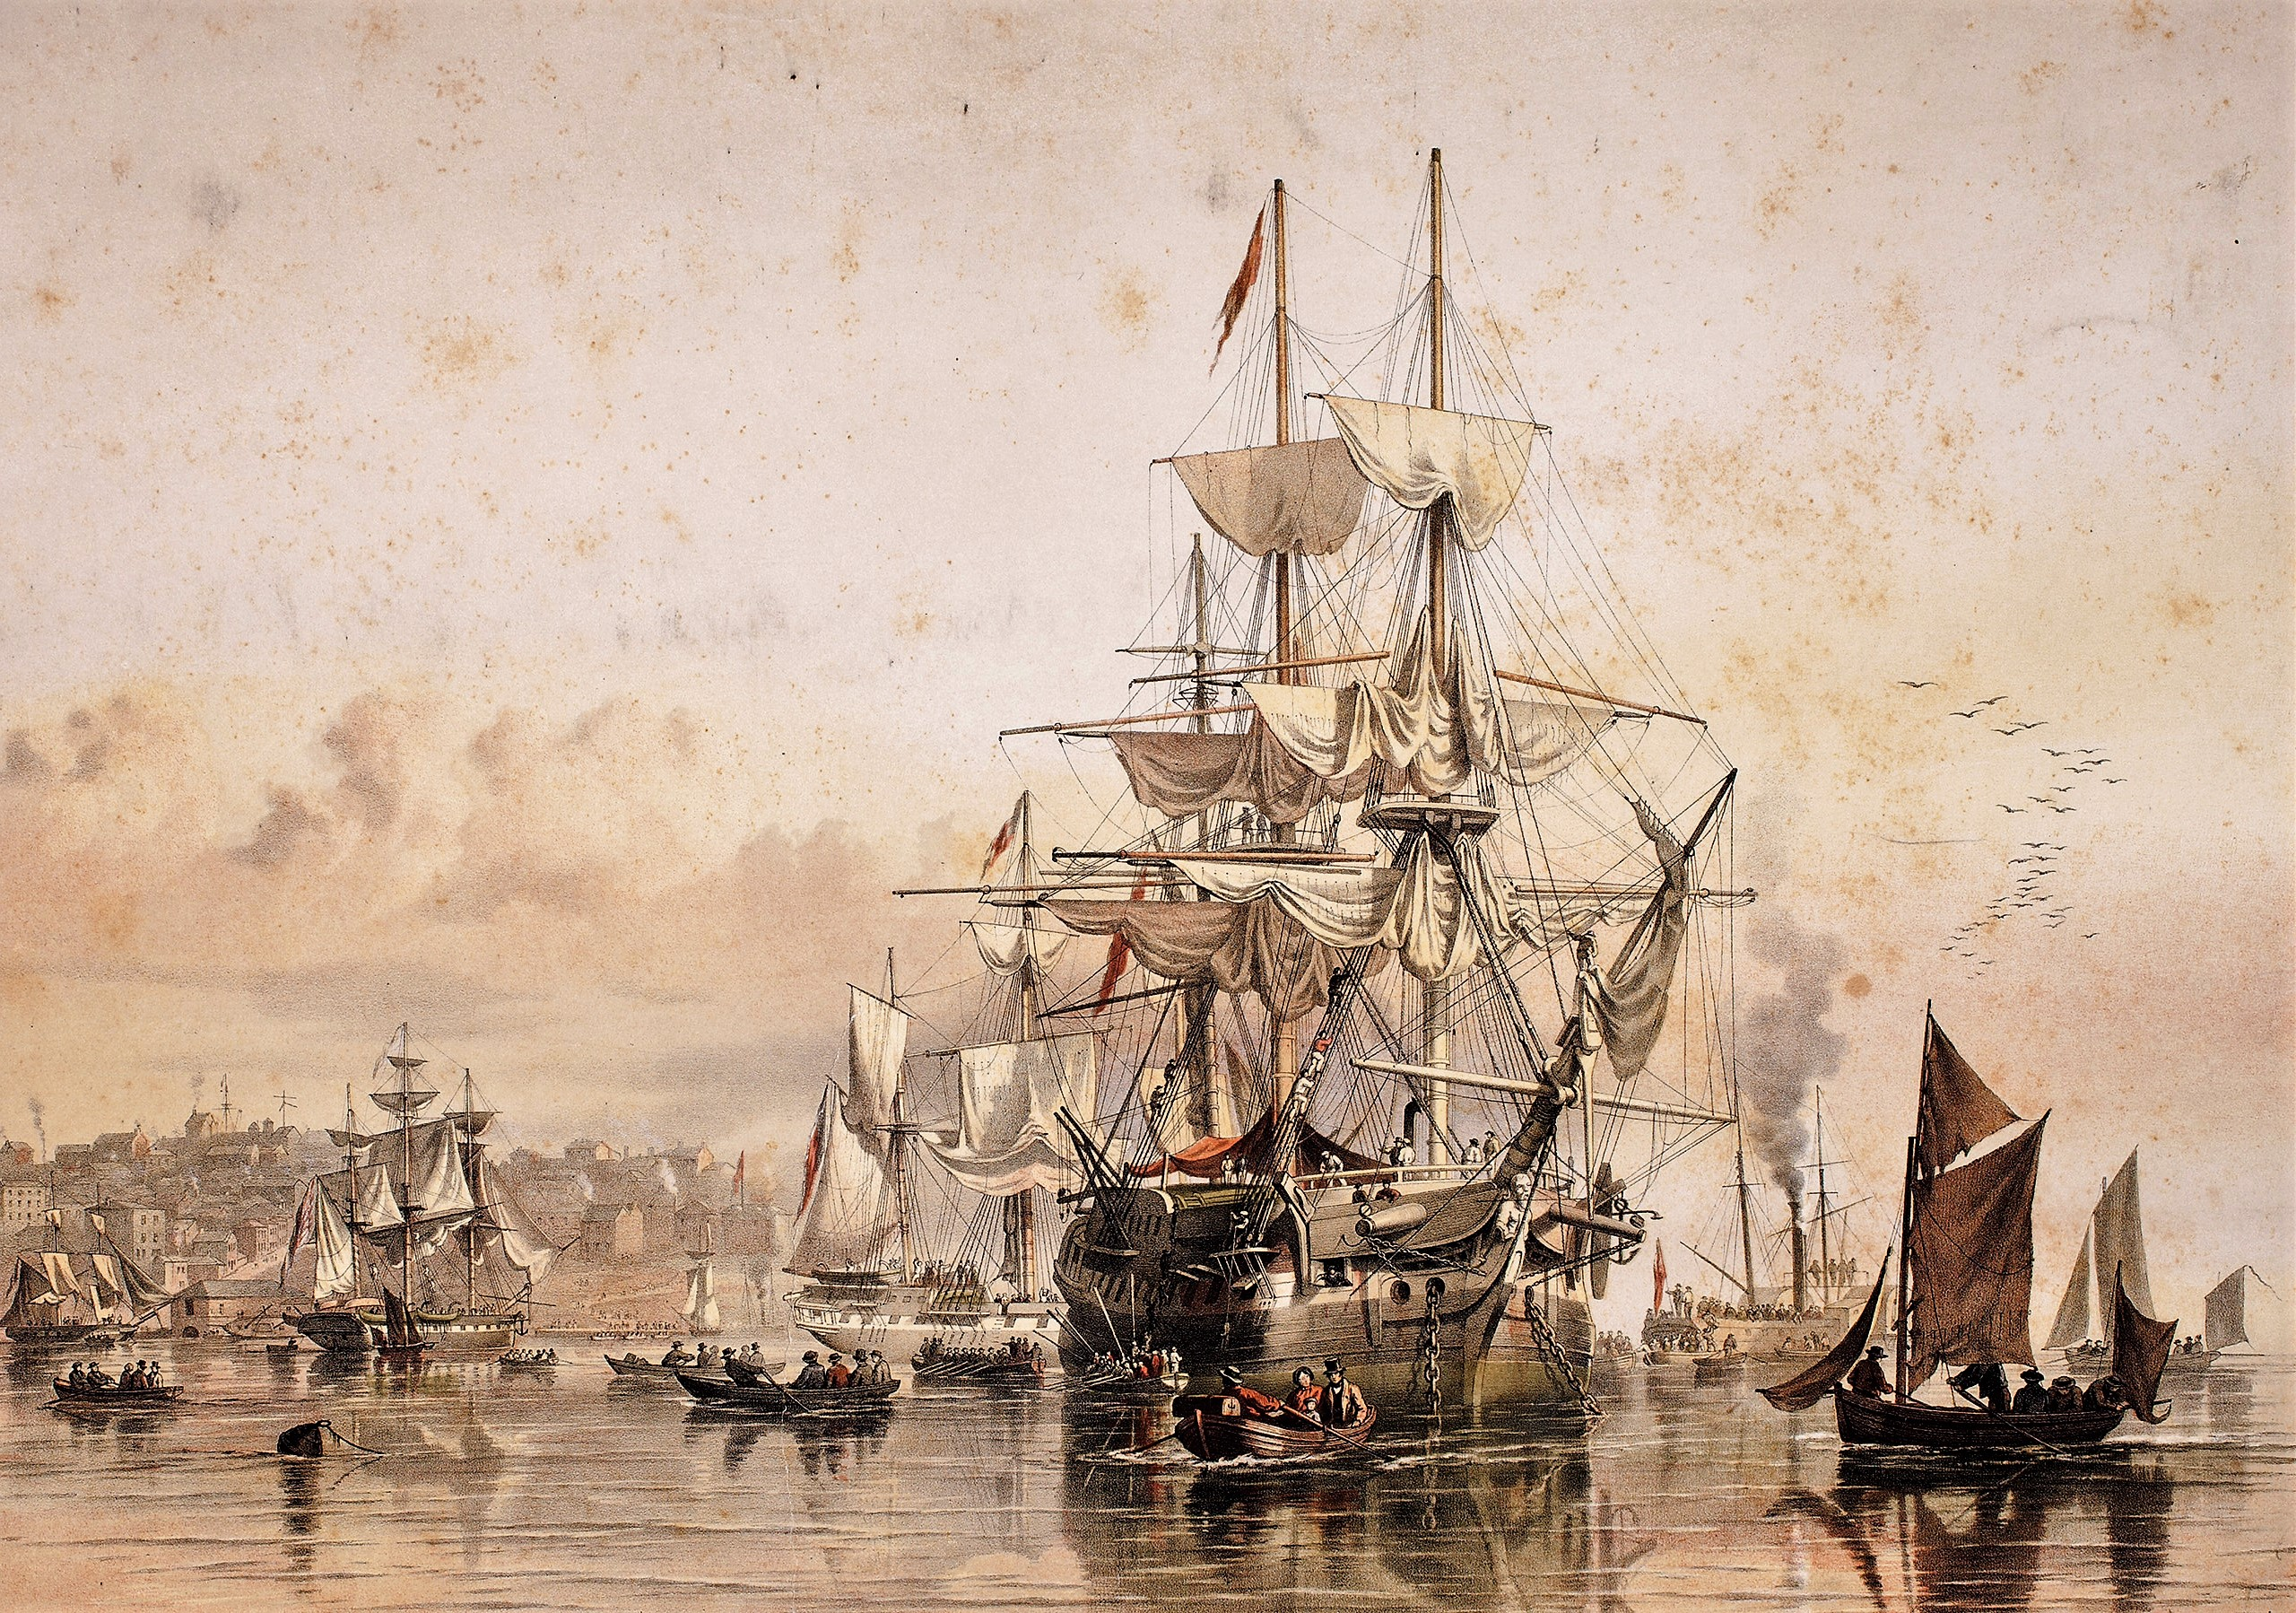 Sydney Cove, N.S.W. Emigrants Leaving the Ship / by O.W. Brierly, 1853